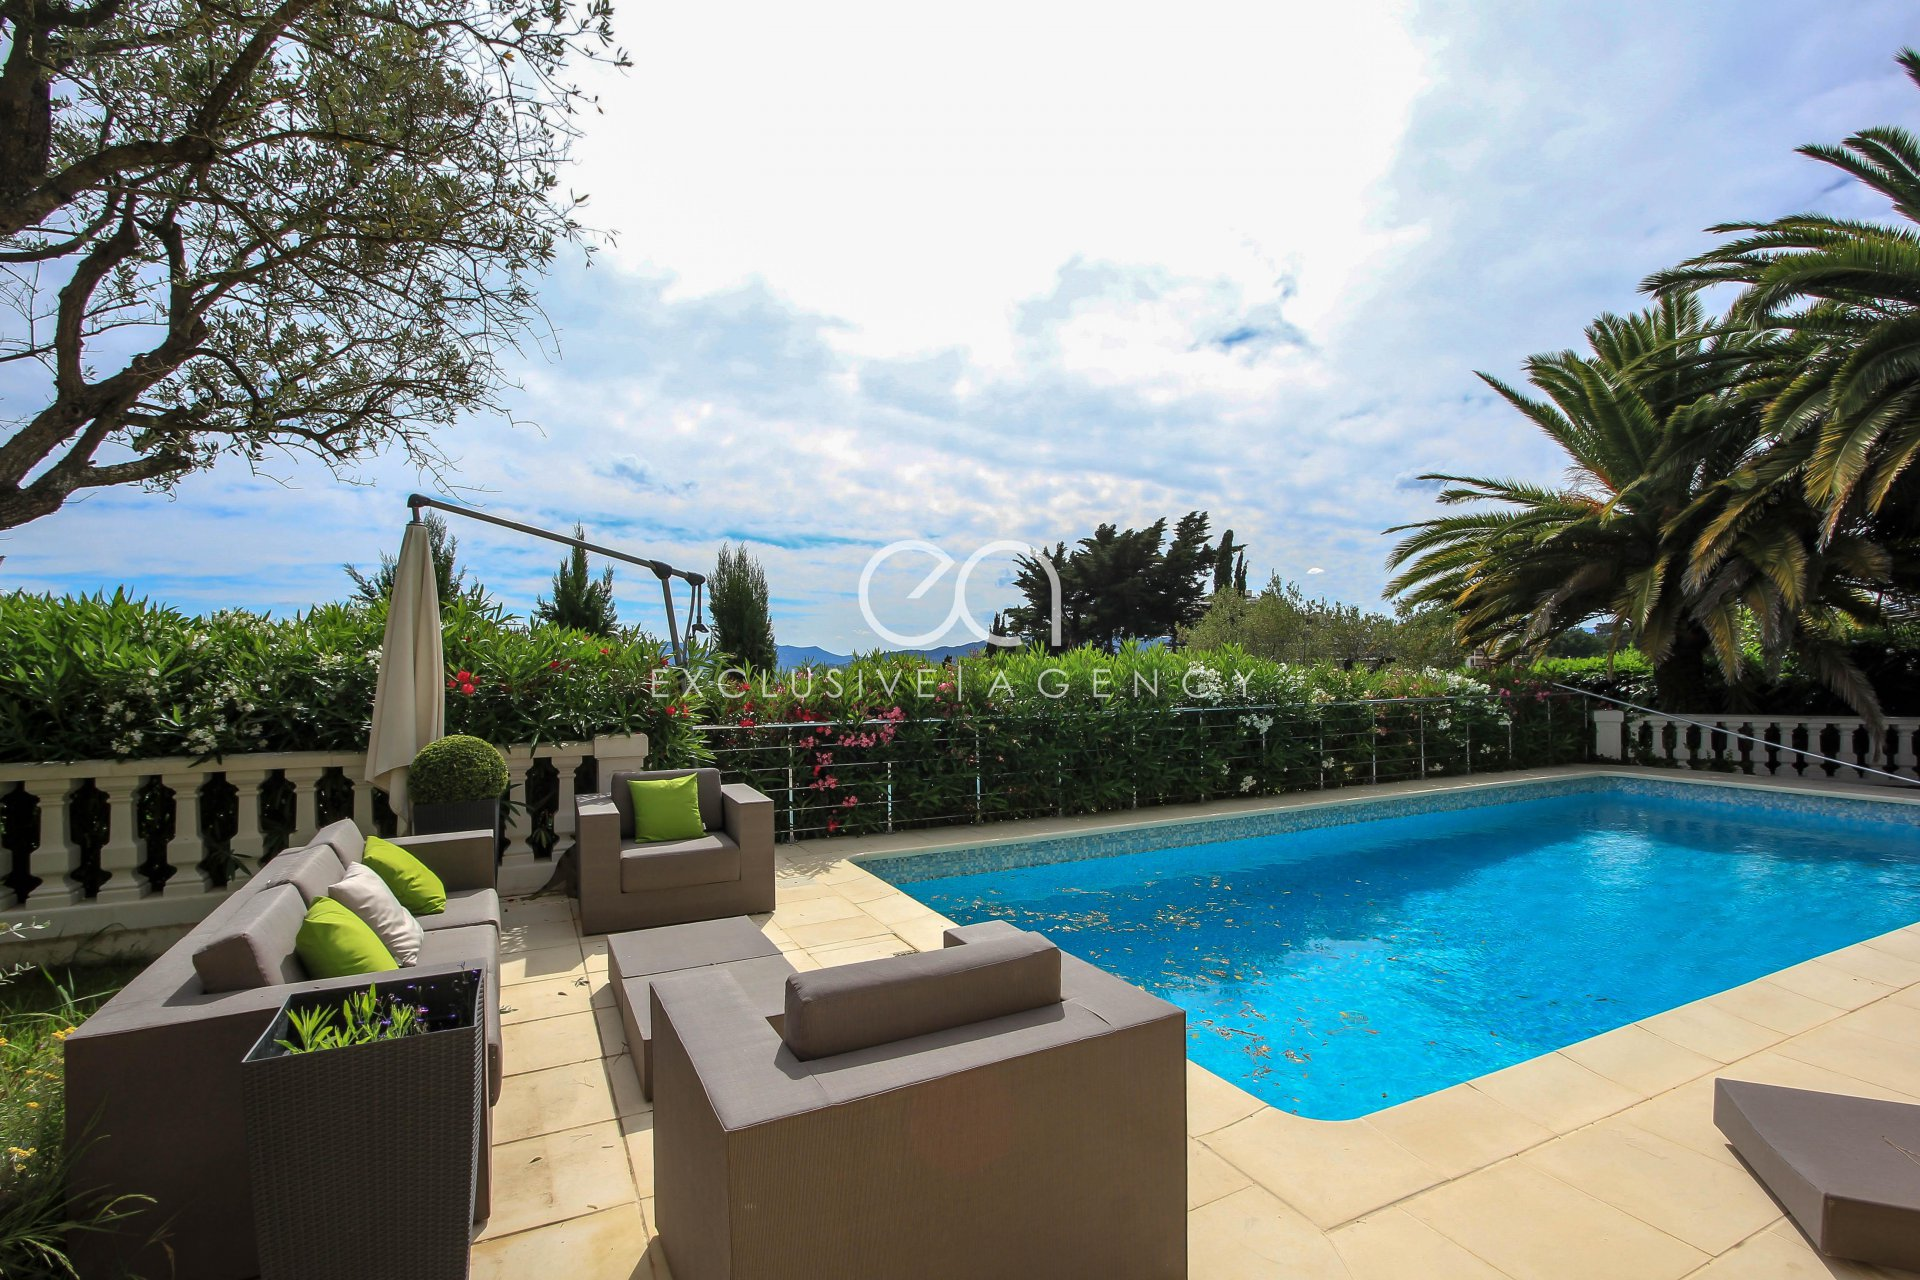 Holiday rentals Hight of Cannes villa 4-bedroom with swimming pool and sea view.